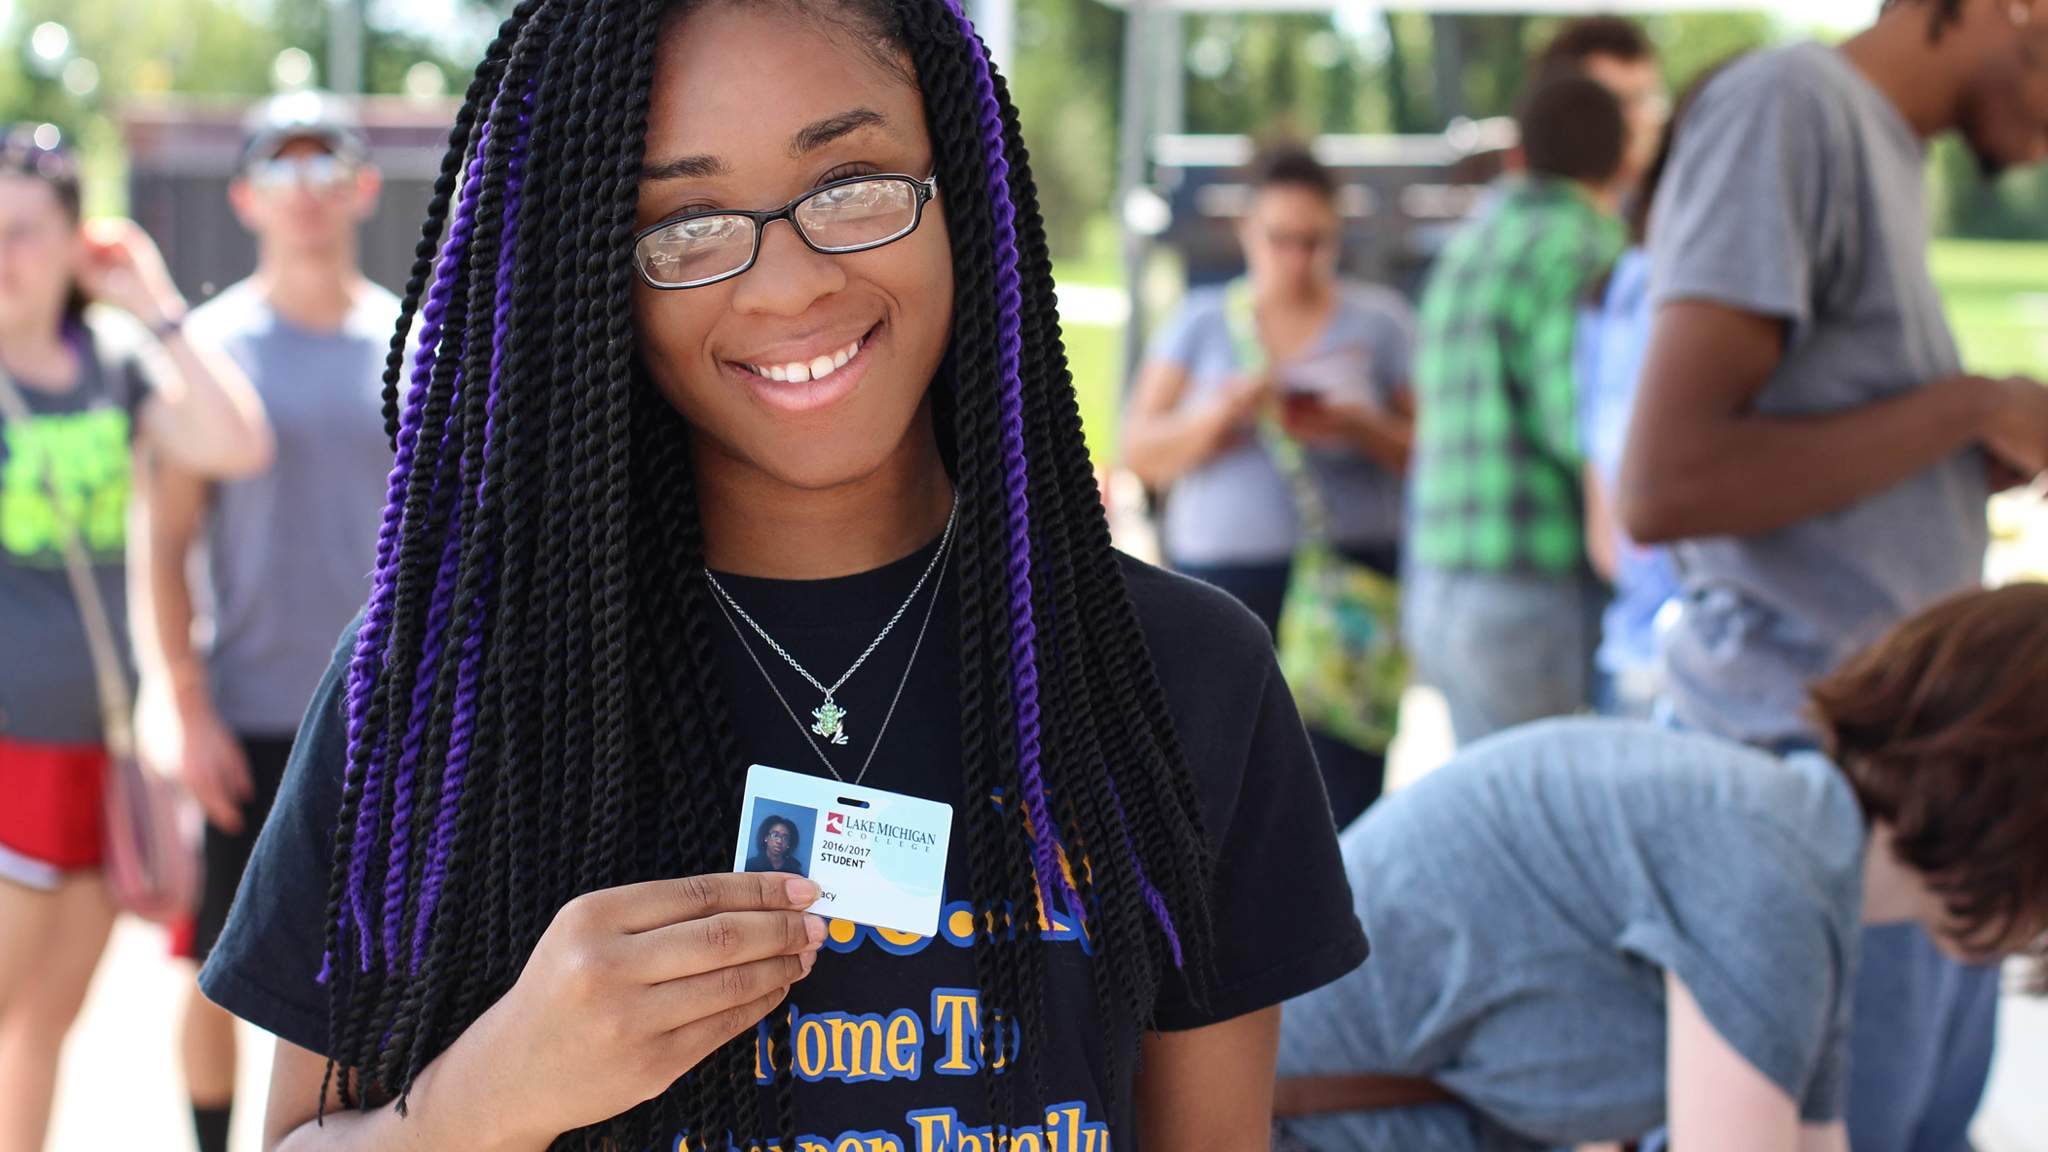 Student with student ID badge